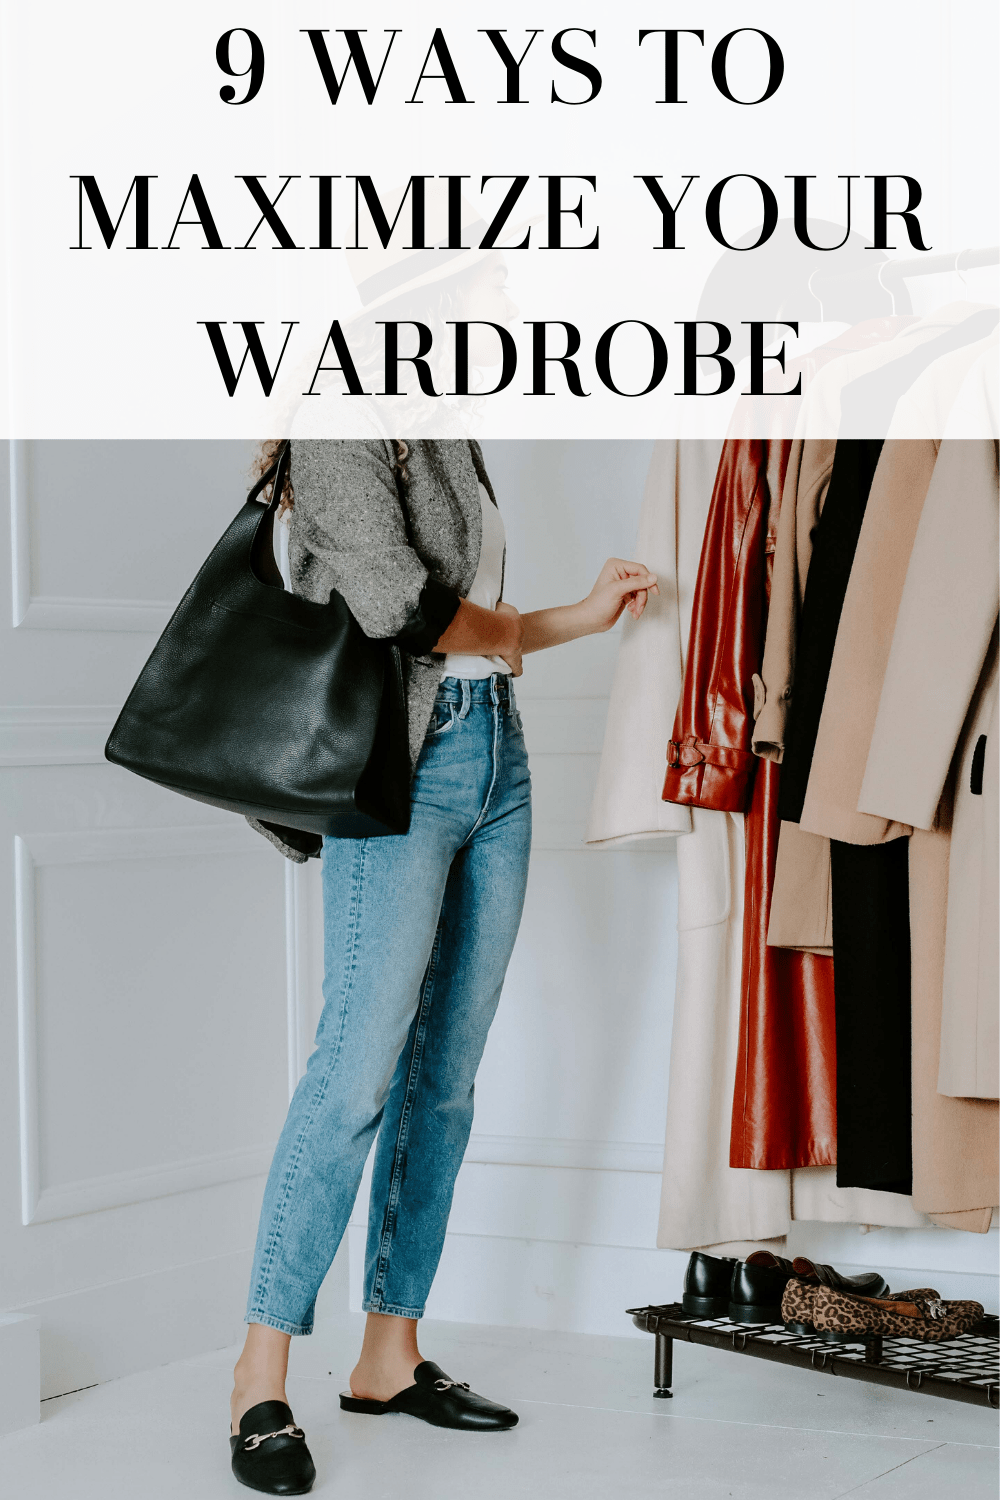 maximize your wardrobe